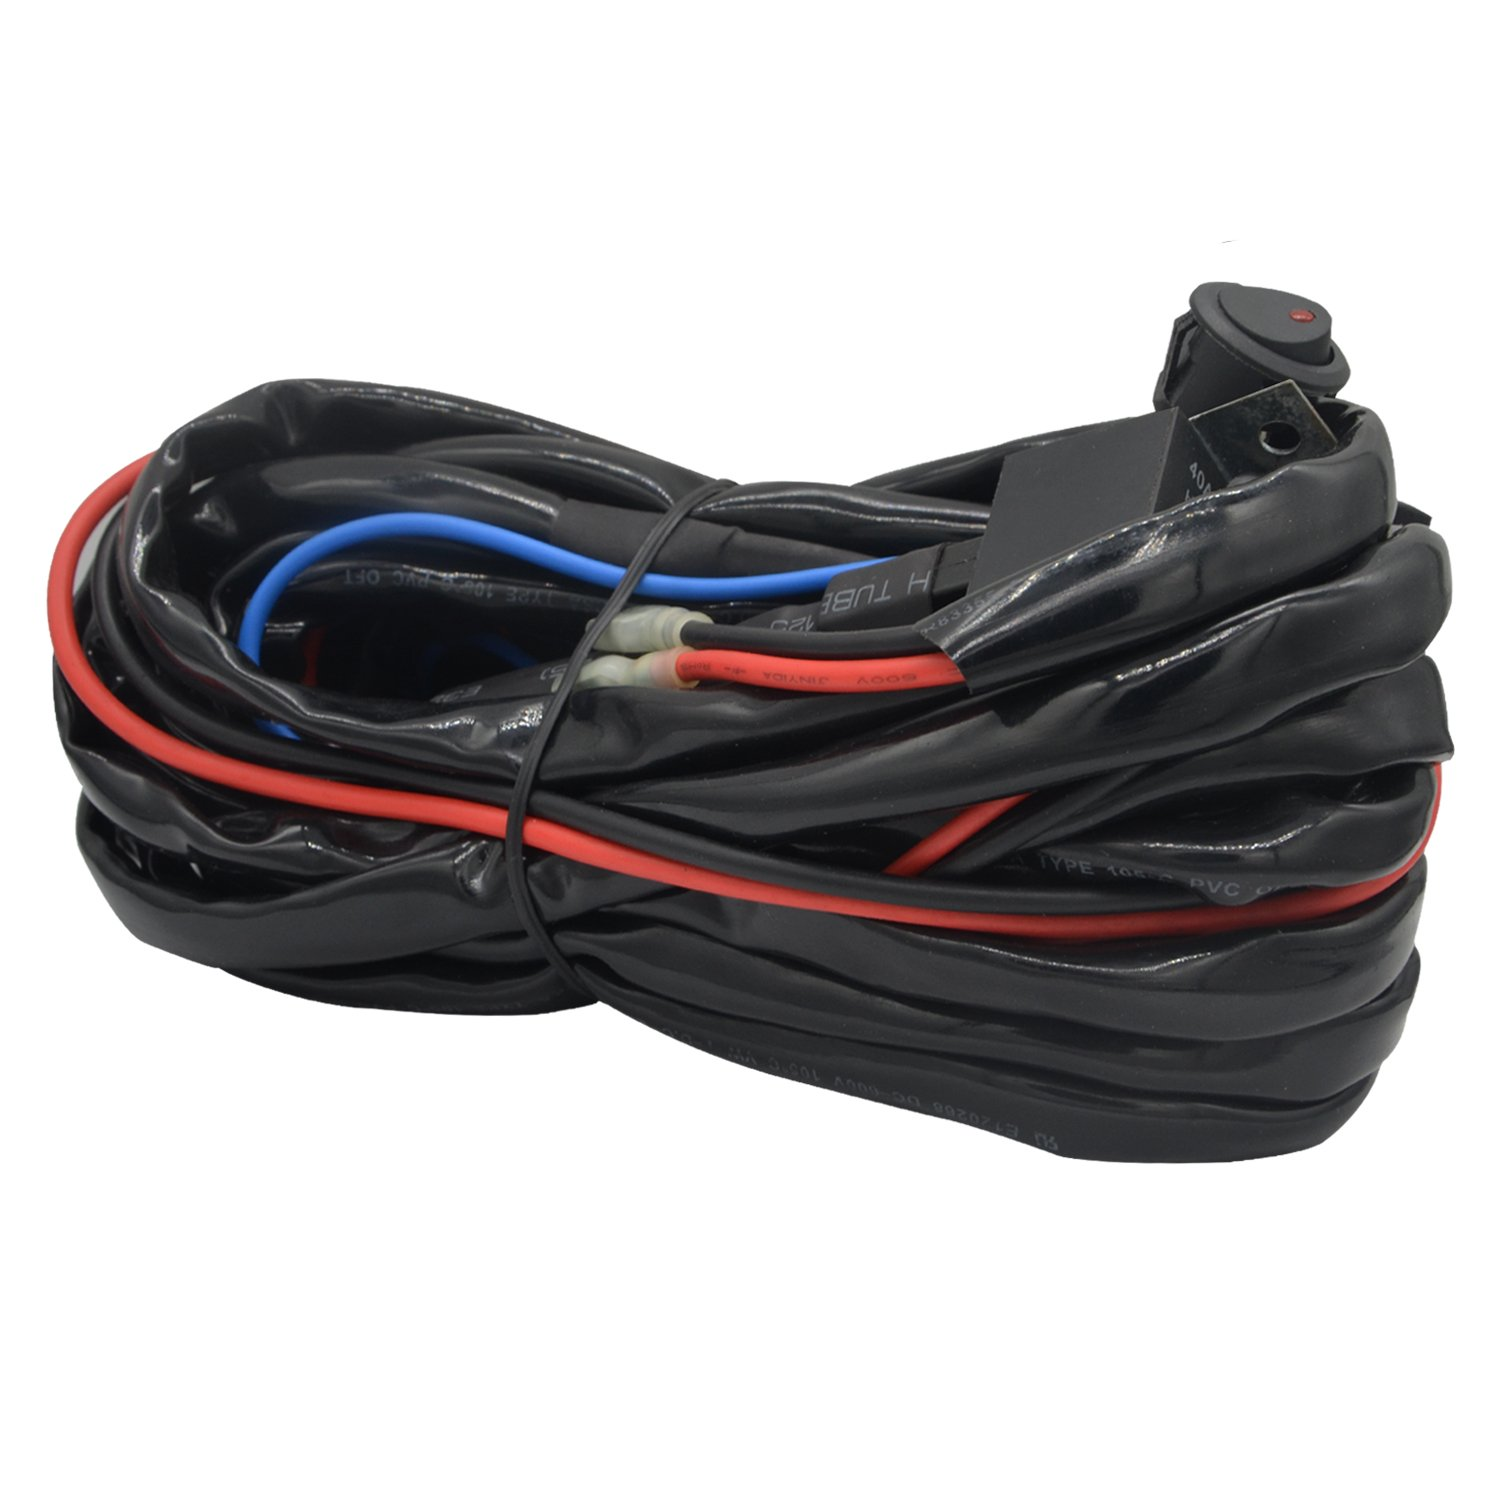 71hdbgsGjCL._SL1500_ amazon com wiring harnesses electrical automotive ksc-wa100 wiring harness at fashall.co